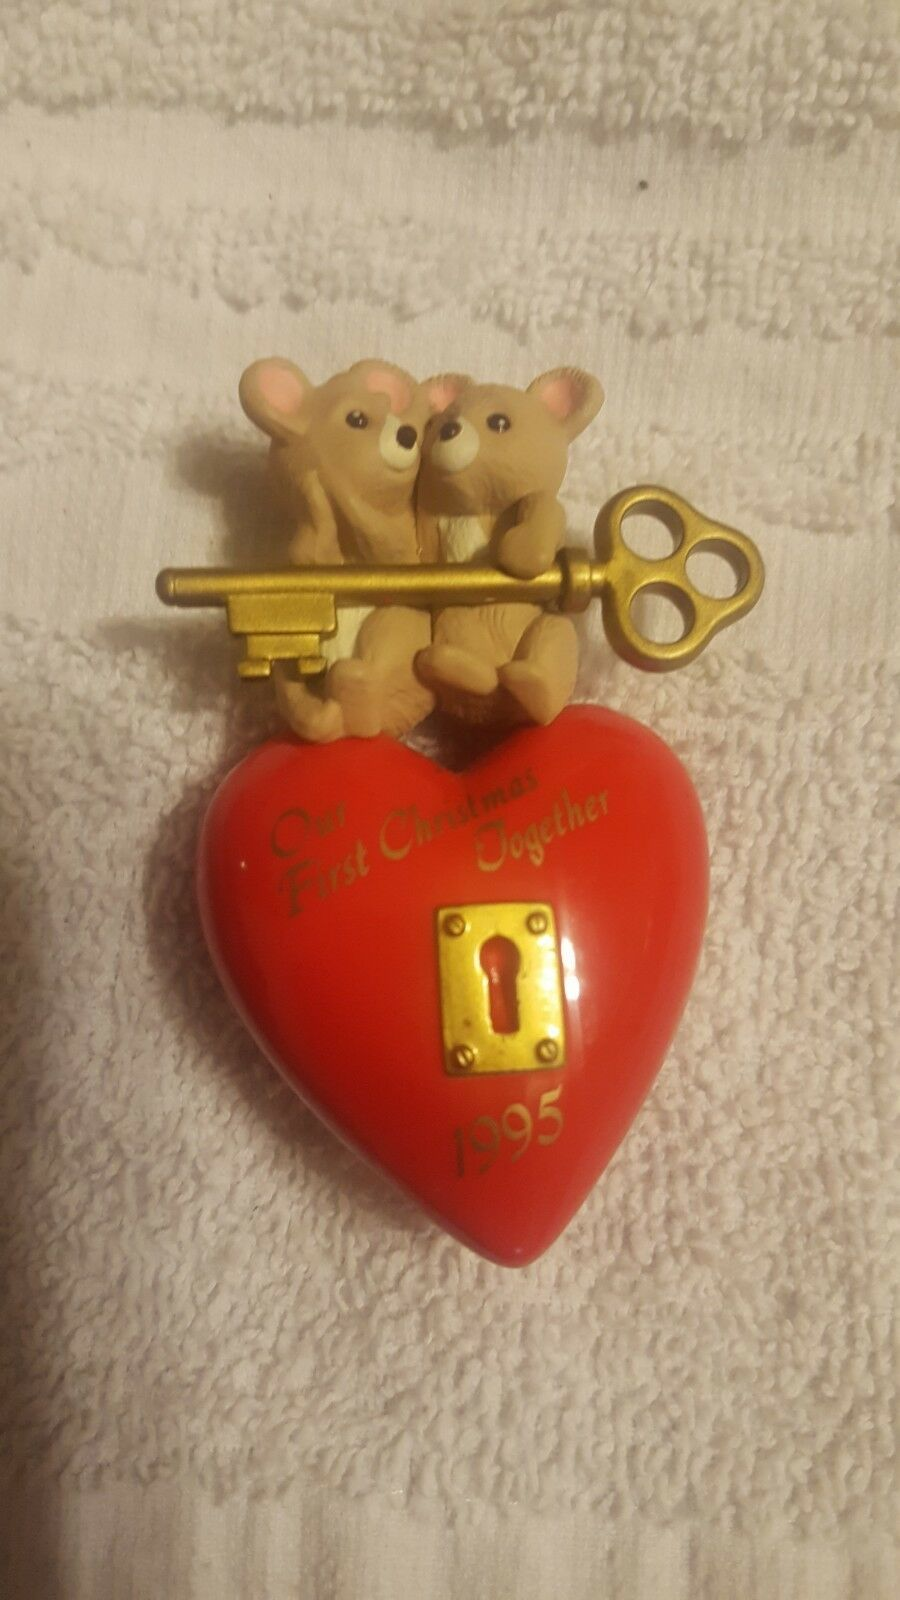 "1995 Hallmark Keepsake Ornament ""Our First Christmas Together"" Heart and Key image 1"